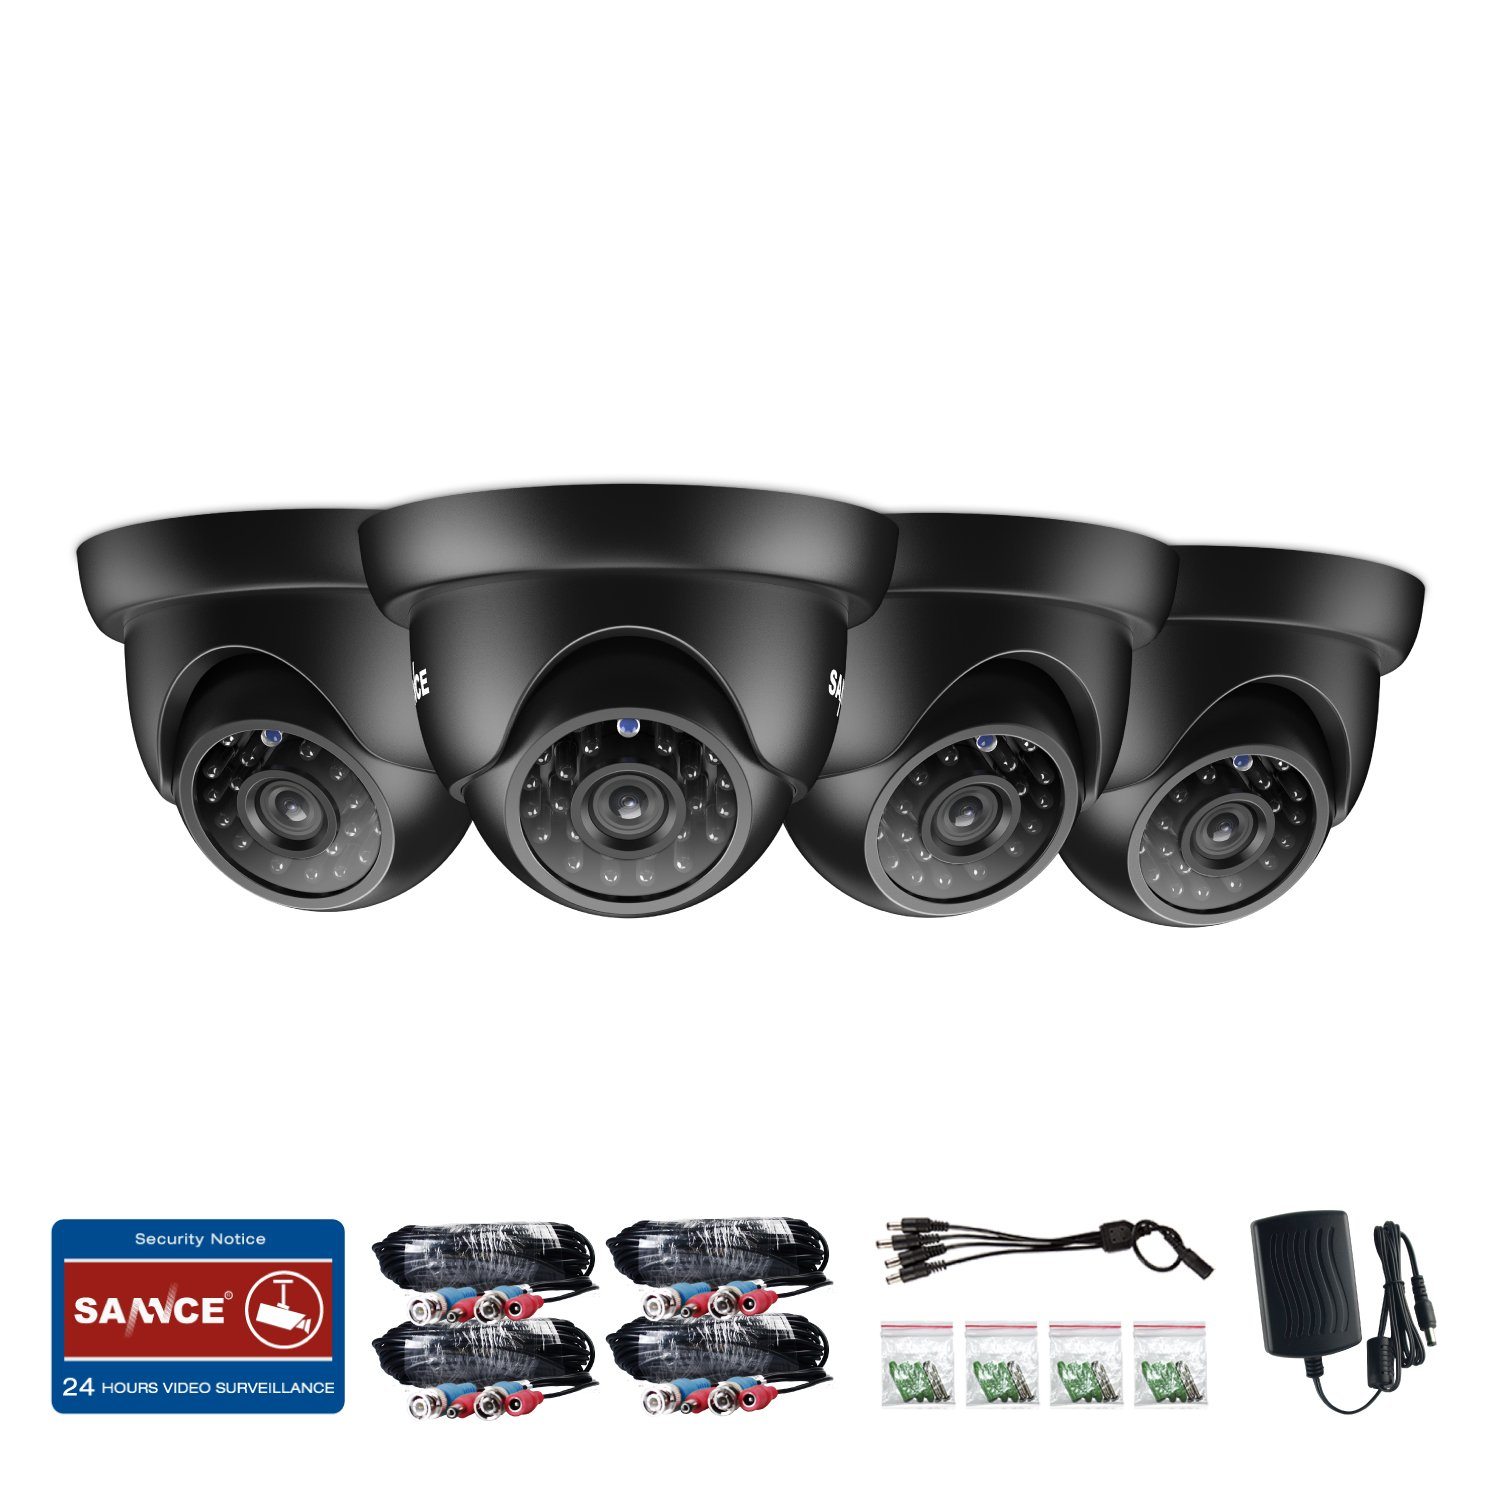 SANNCE 4 Pack 1/3'' 1500TVL HDTVI 720P High Resolution Security Surveillance CCTV Camera Kit HD Had IR Cut 3.6mm Lens Outdoor Dome Weatherproof Wide Angle